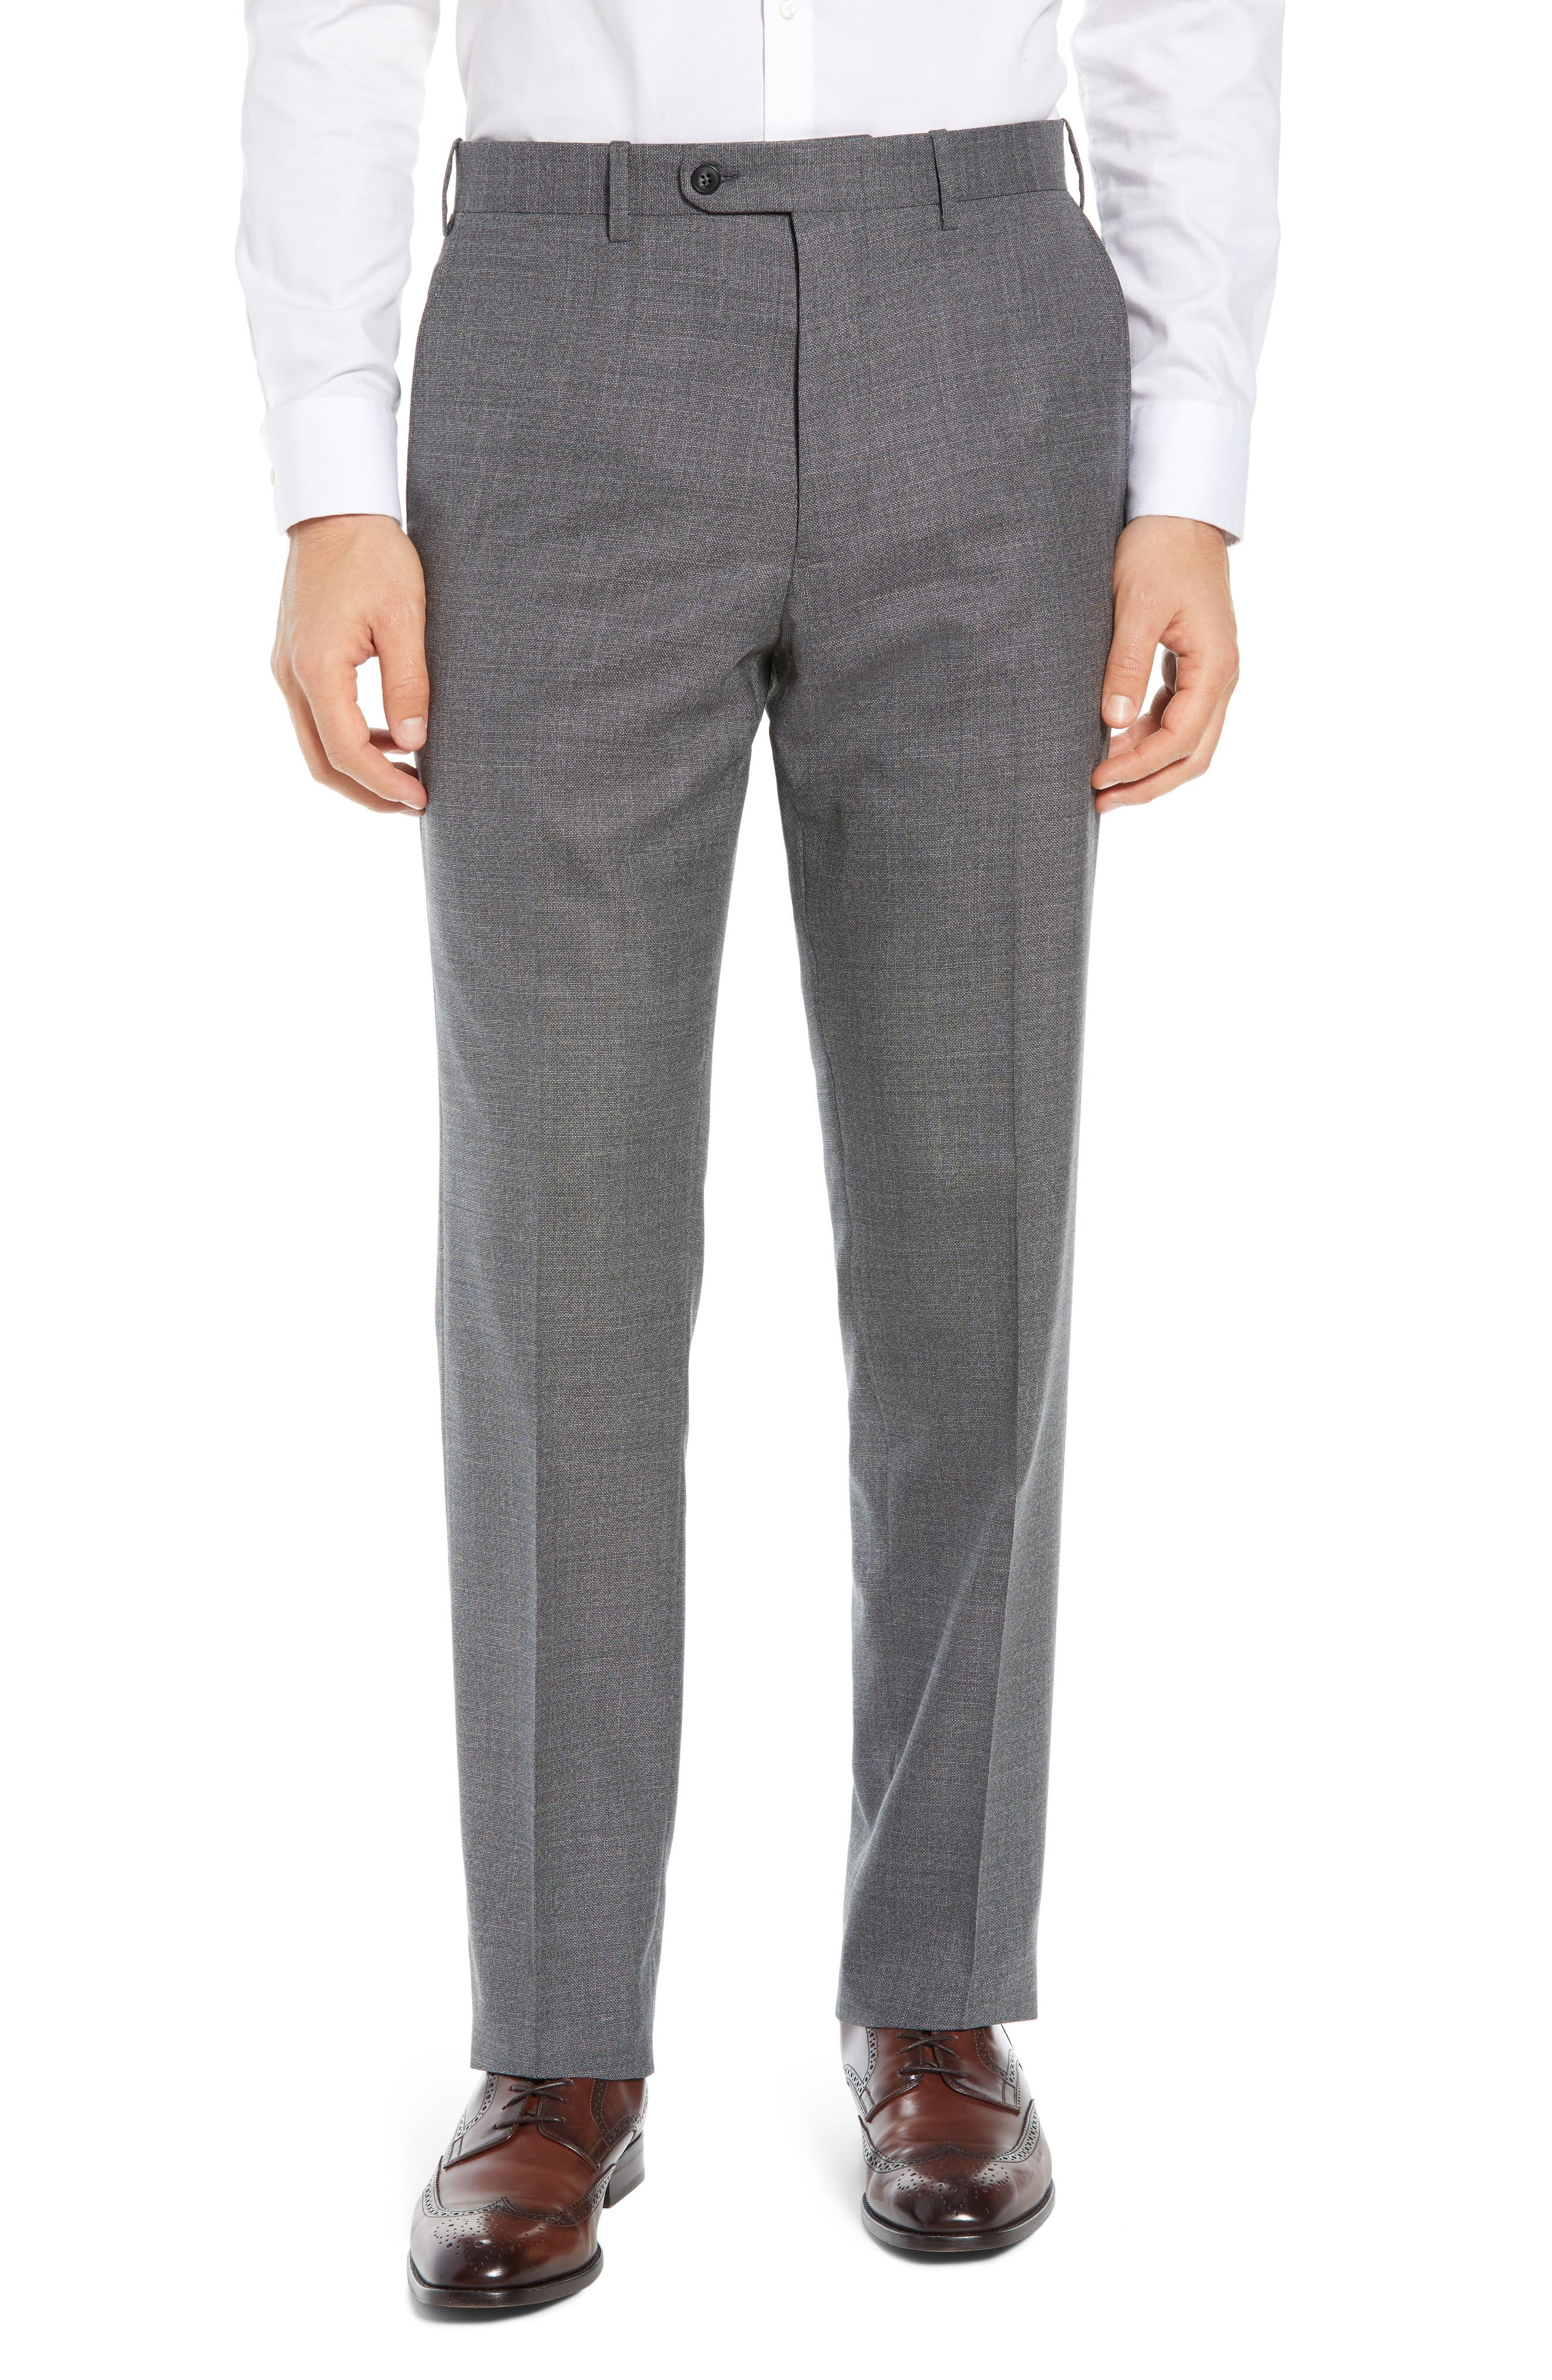 JOHN W. NORDSTROM<SUP>®</SUP> Torino Flat Front Solid Wool Trousers, Main, color, GREY PHANTOM BASKET WEAVE